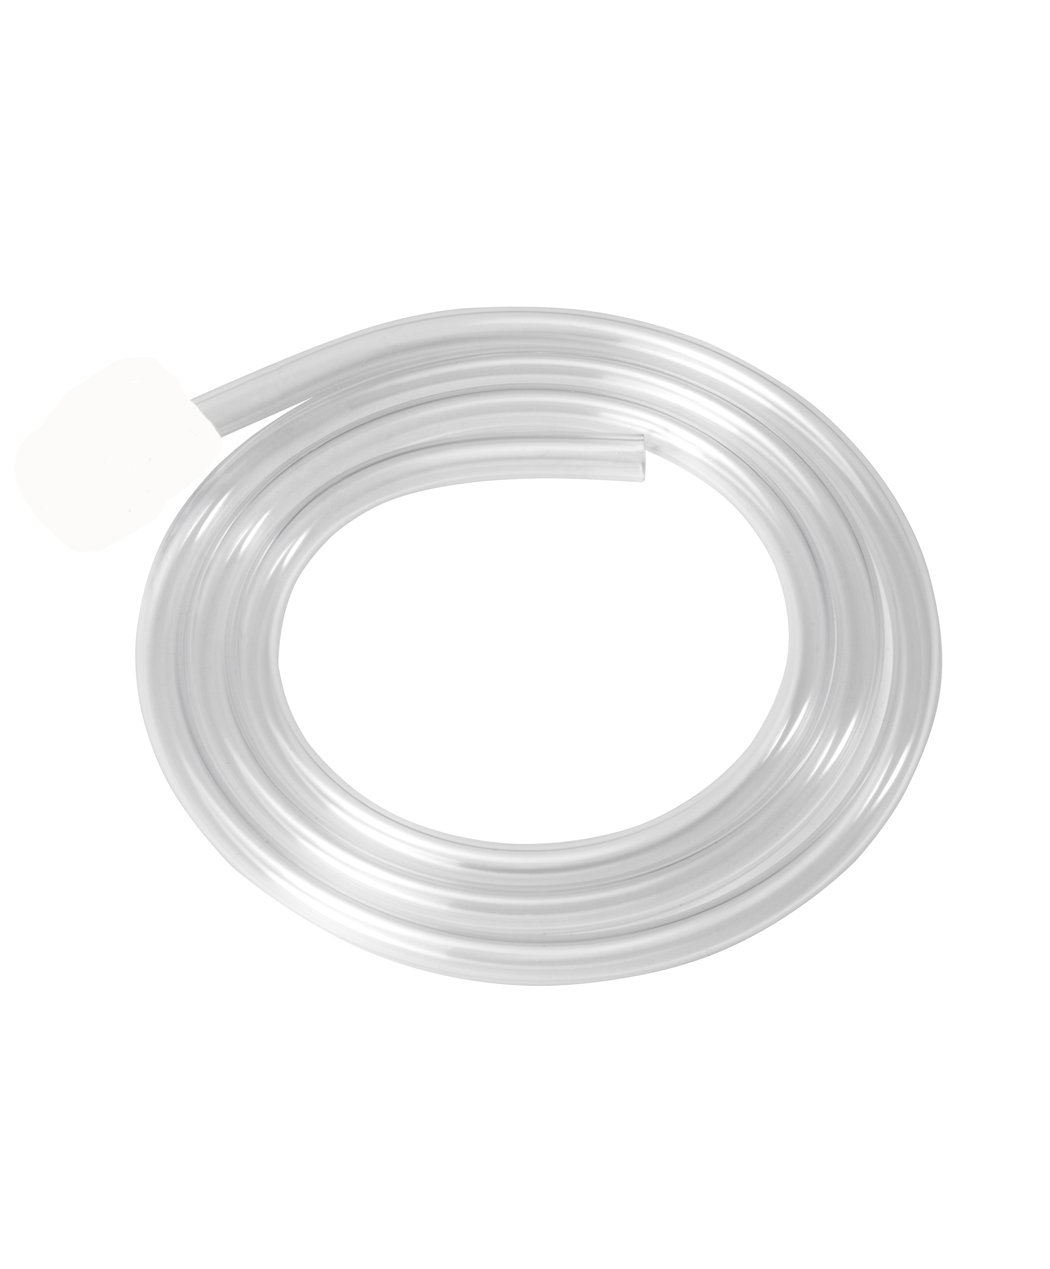 Siphon Hose 7/16 Inch ID (100 Foot) Box by LD Carslon